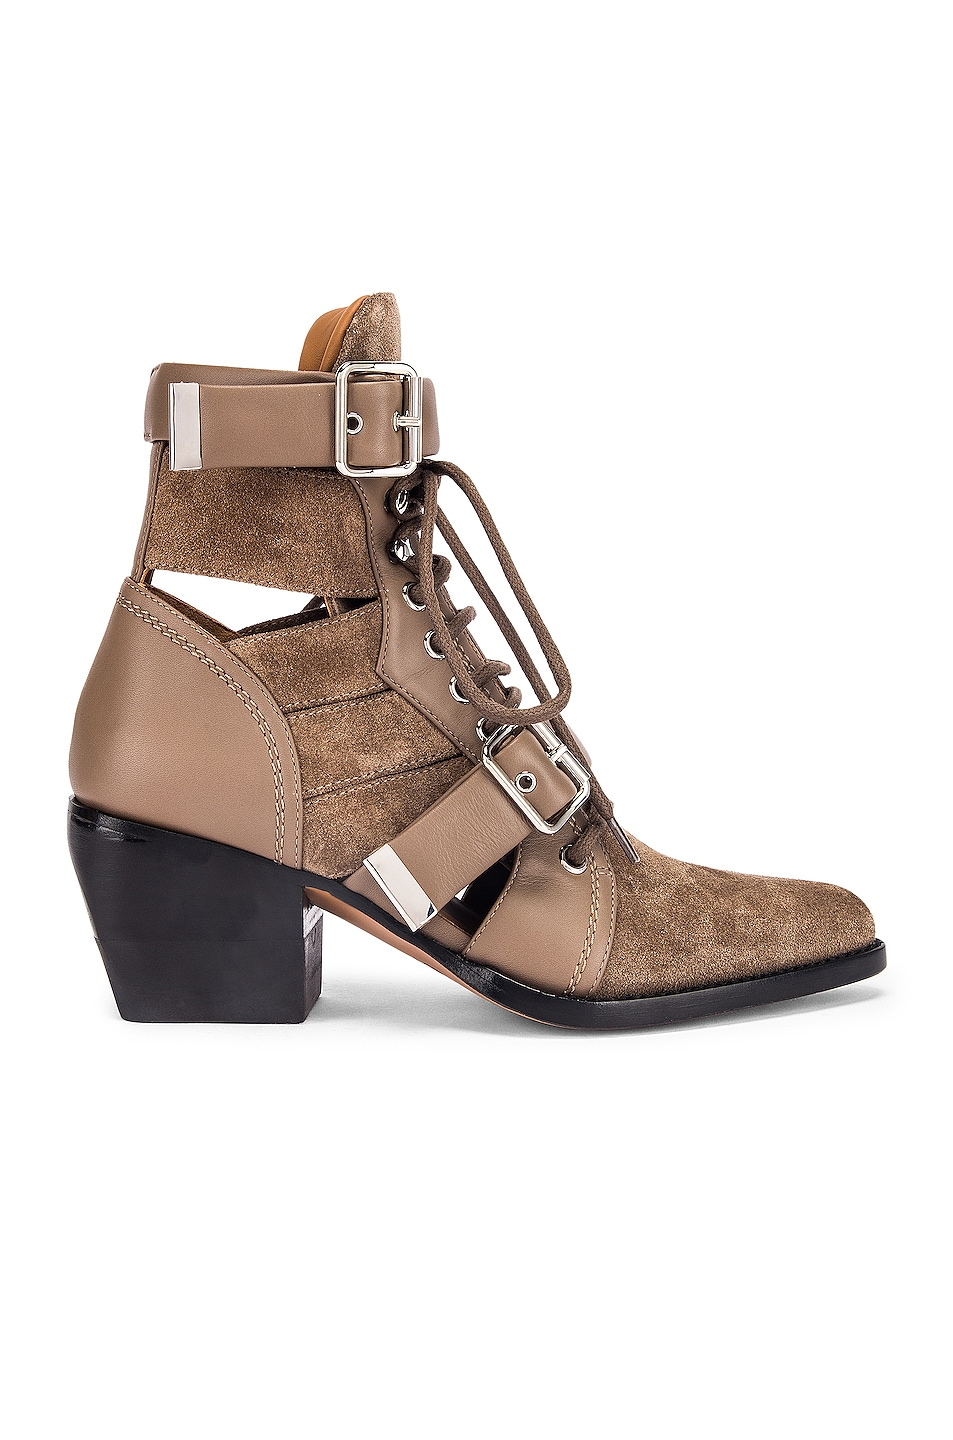 Image 1 of Chloe Lace Up Buckle Boots in Motty Grey